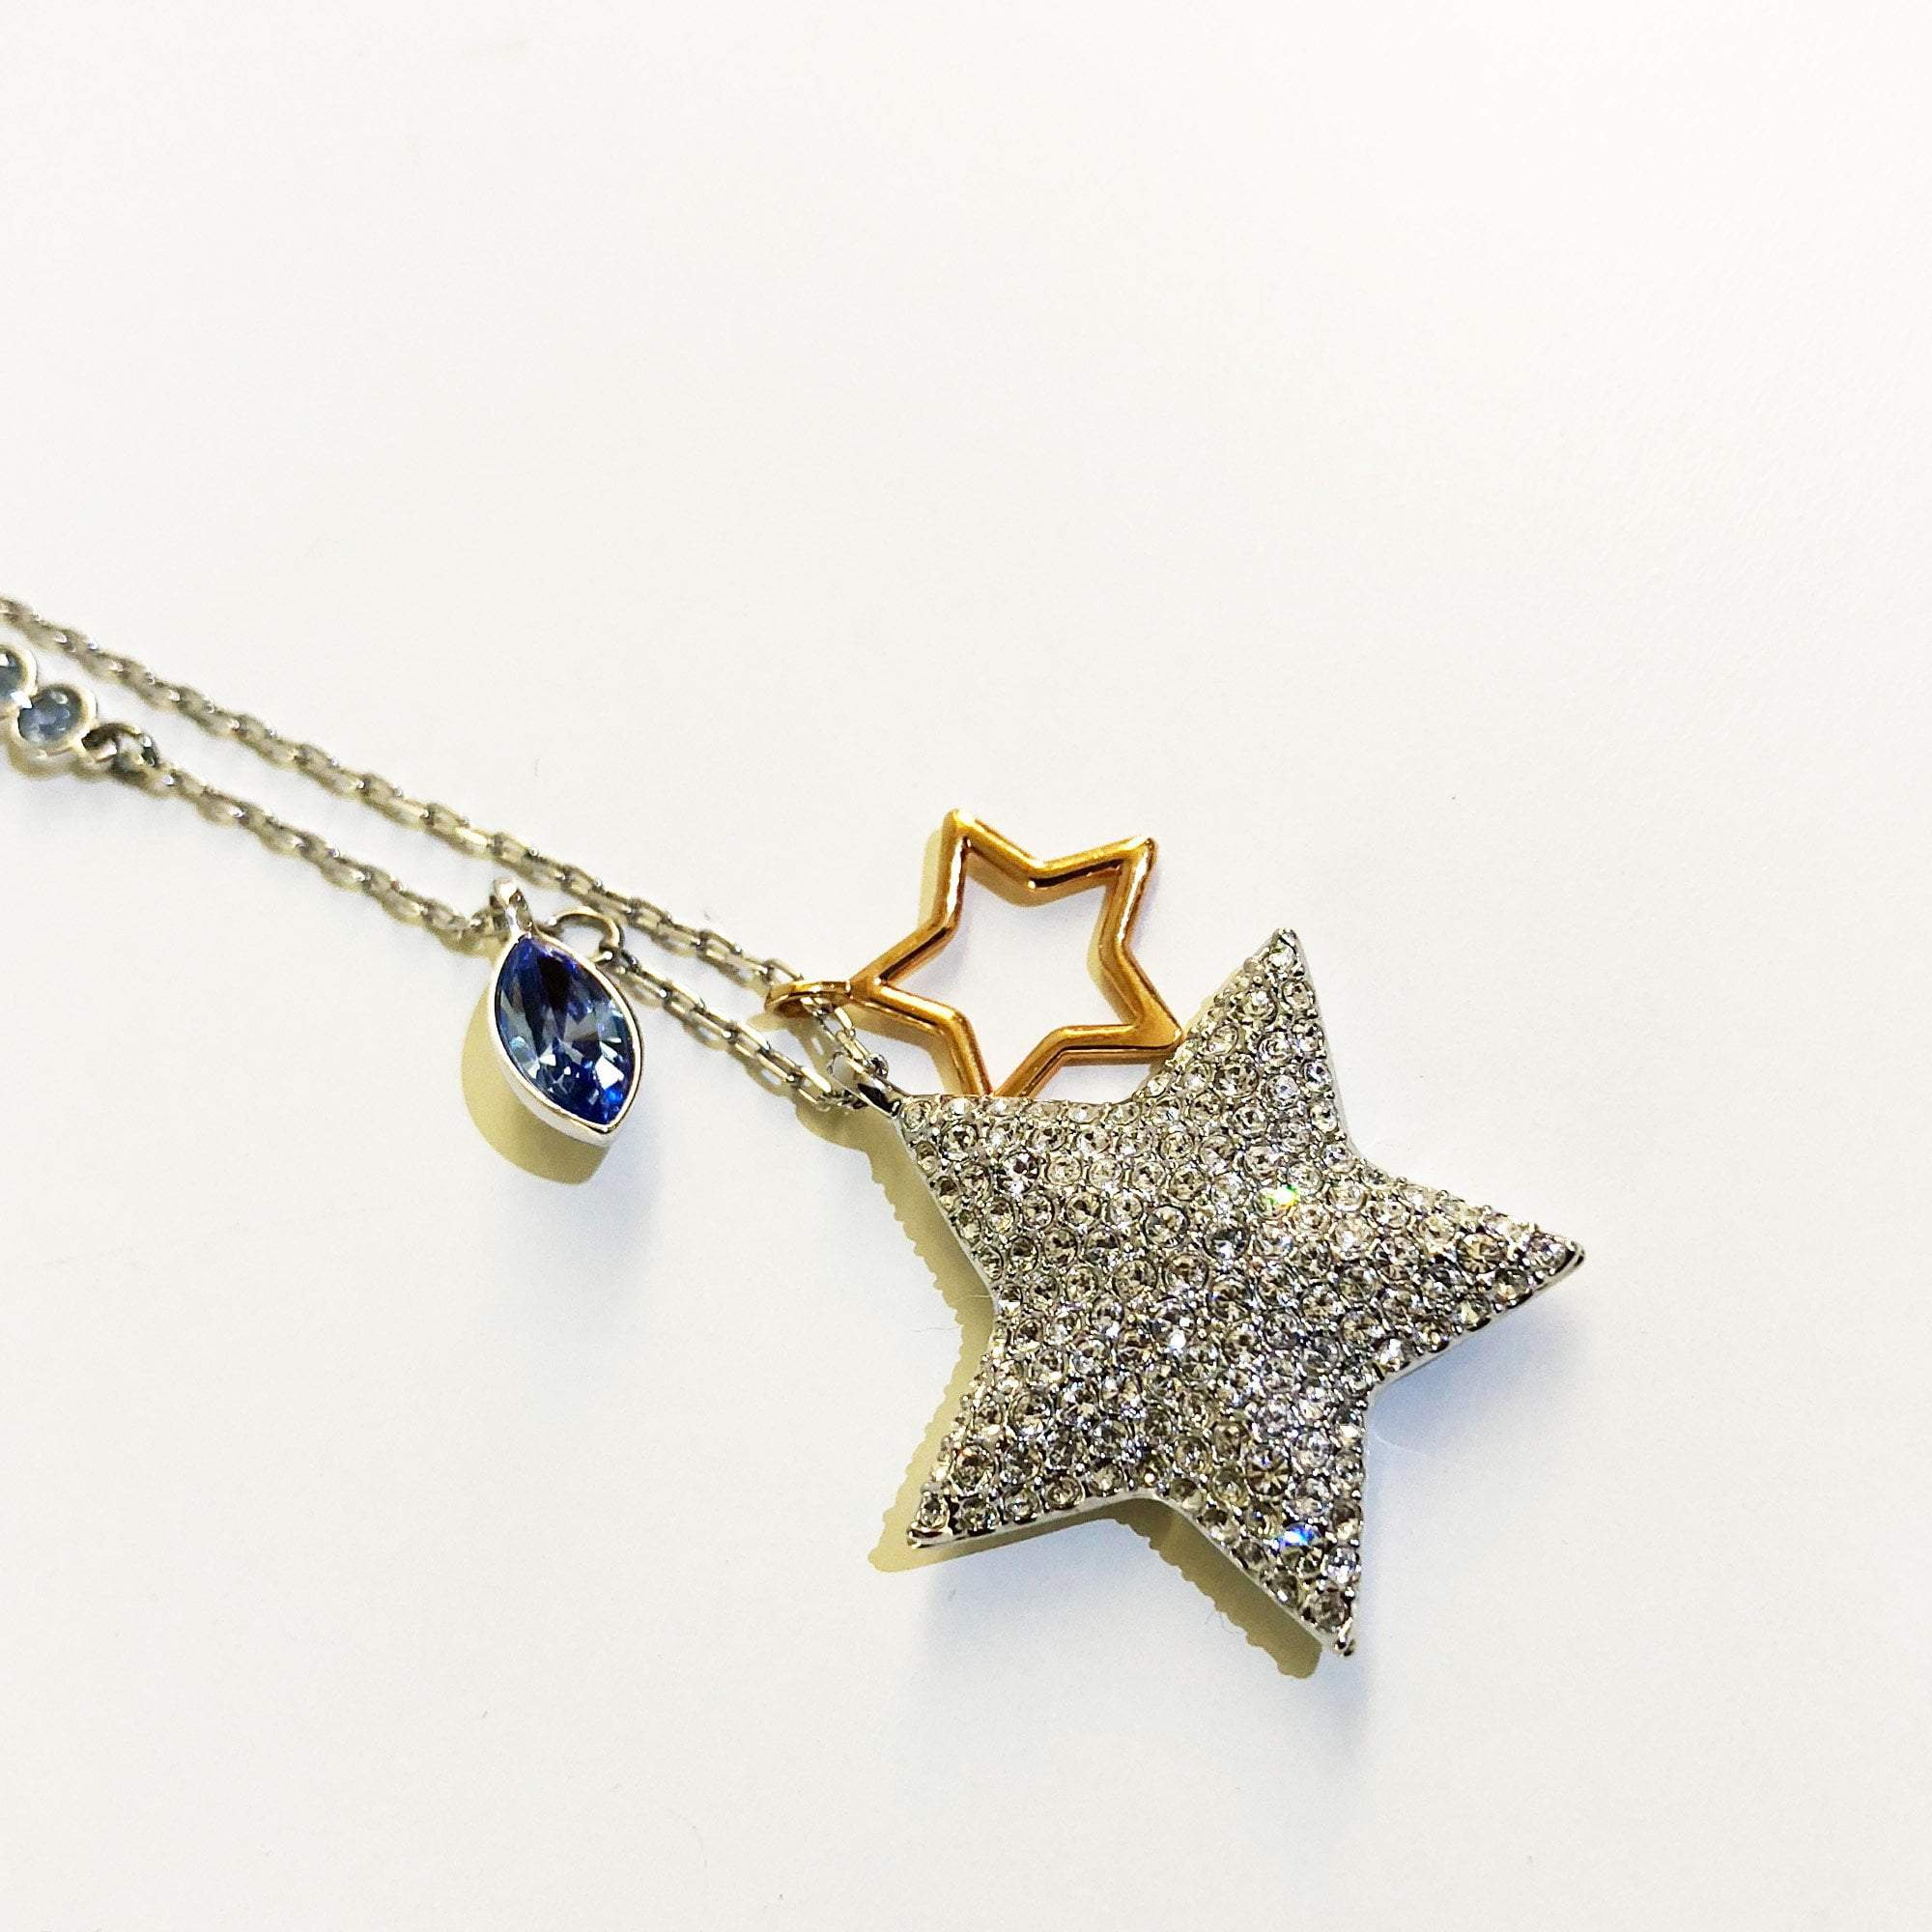 Swarovski Gold Rhodium Plated Crystal Pave Double Star Pendant Necklace